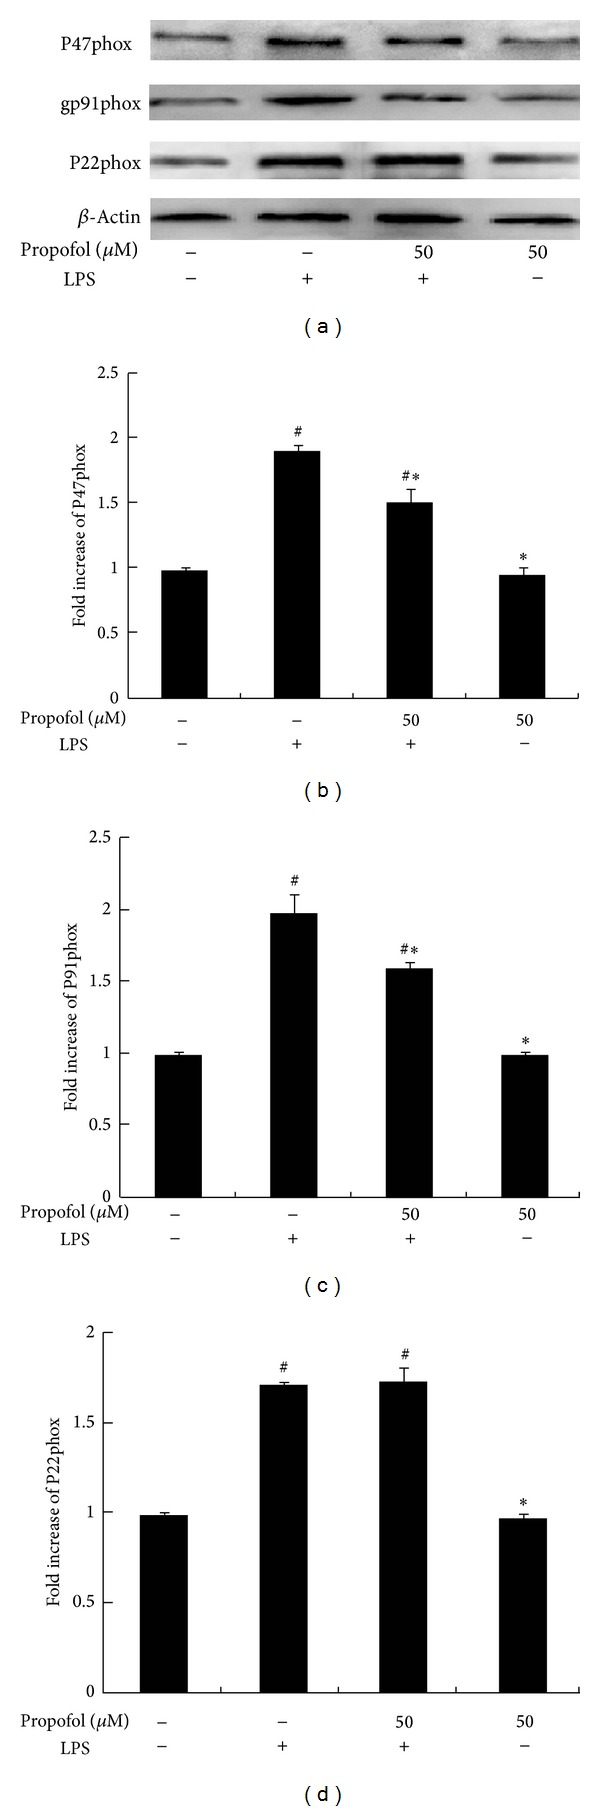 Effect of propofol pretreatment on LPS-induced NADPH oxidase expression. Cells were pretreated with dimethyl sulfoxide (DMSO) or propofol for 40 min and then stimulated with LPS for 8 h. (a) Protein expression of oxidase subunits was analyzed by Western blot analysis of whole cell lysates. (b, c, and d) The levels of subunit protein expression were quantified by measuring band intensities and displayed as fold increase relative to β -actin. Each value represents the means ± SD for n = 4. # and ∗ indicate that a value significantly ( P